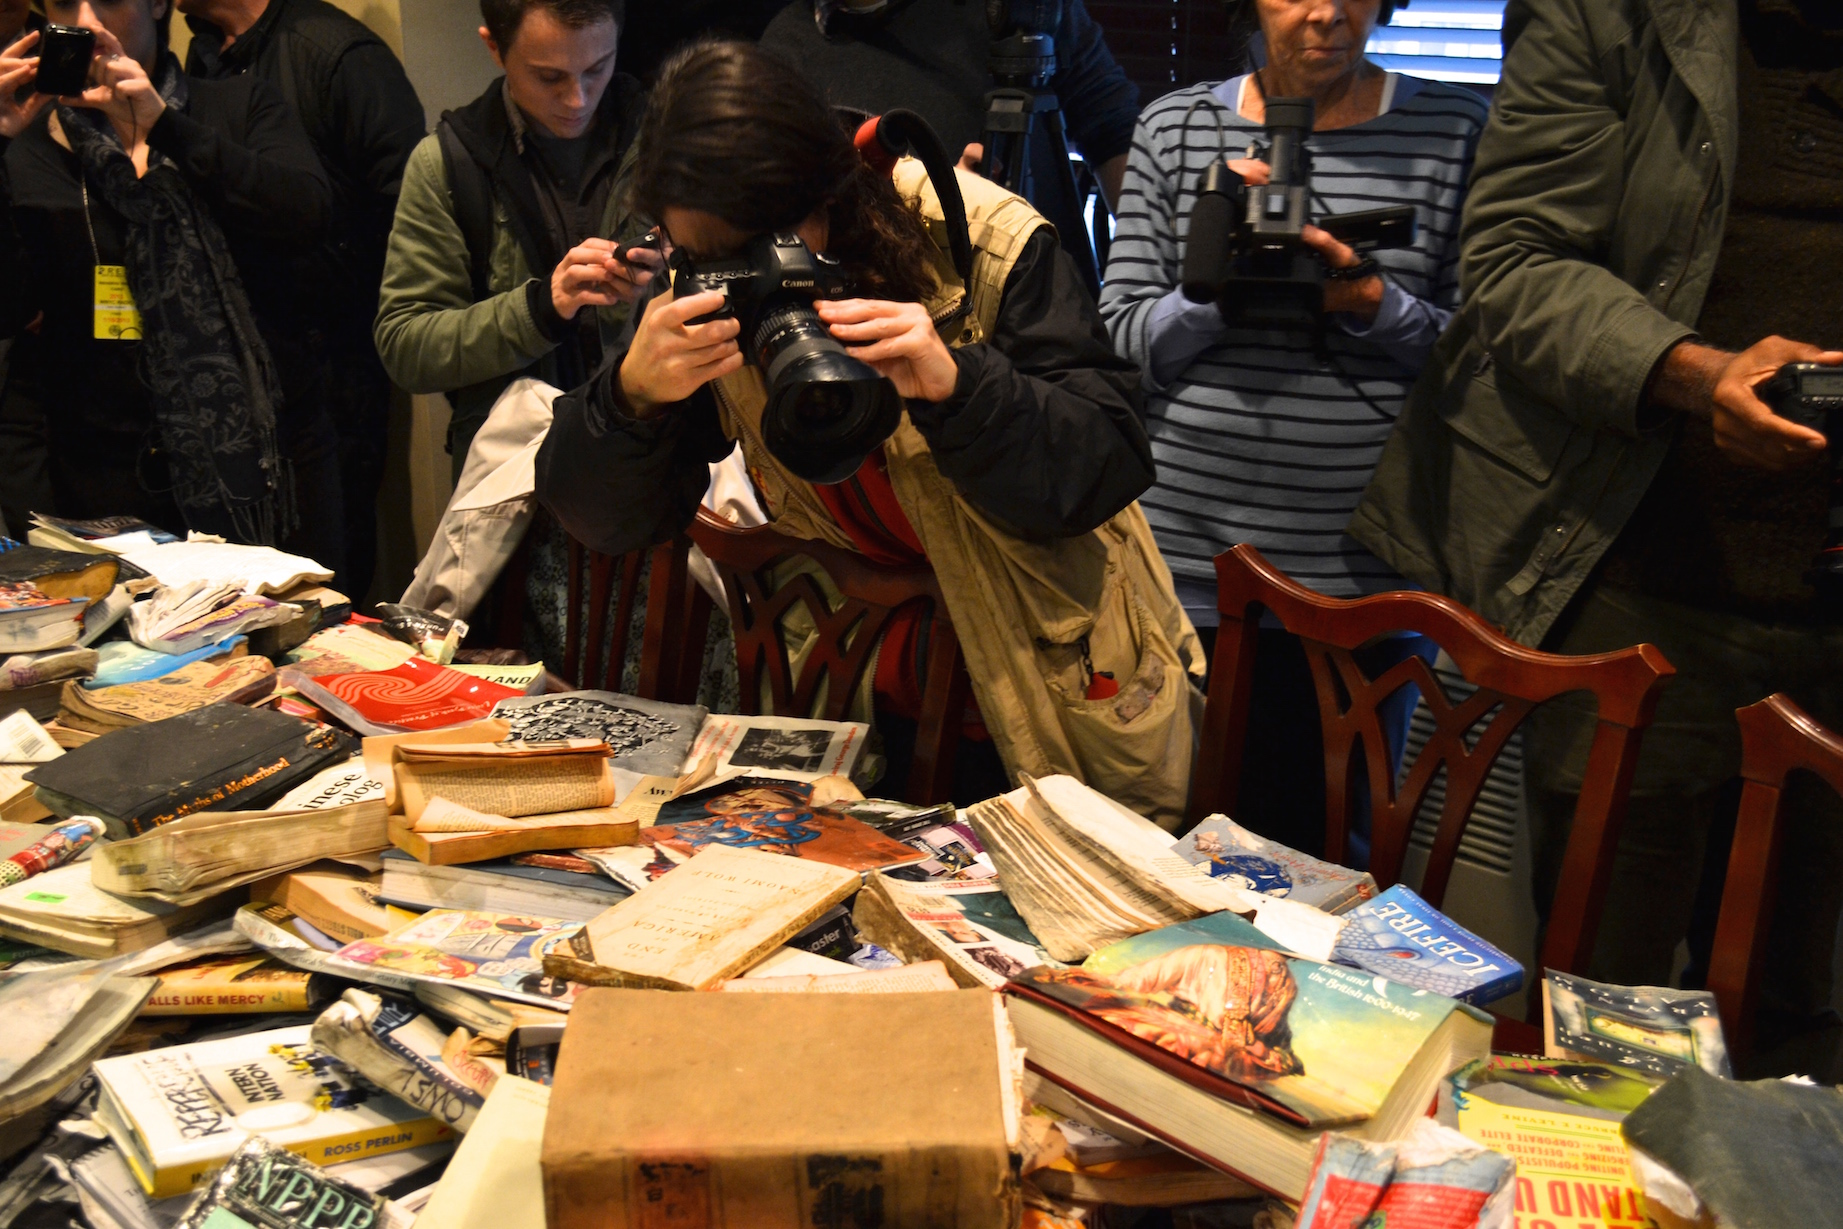 the dregs of the library trashing the occupy wall street library press photographing damaged books at the conference announcing a lawsuit against the city of new york